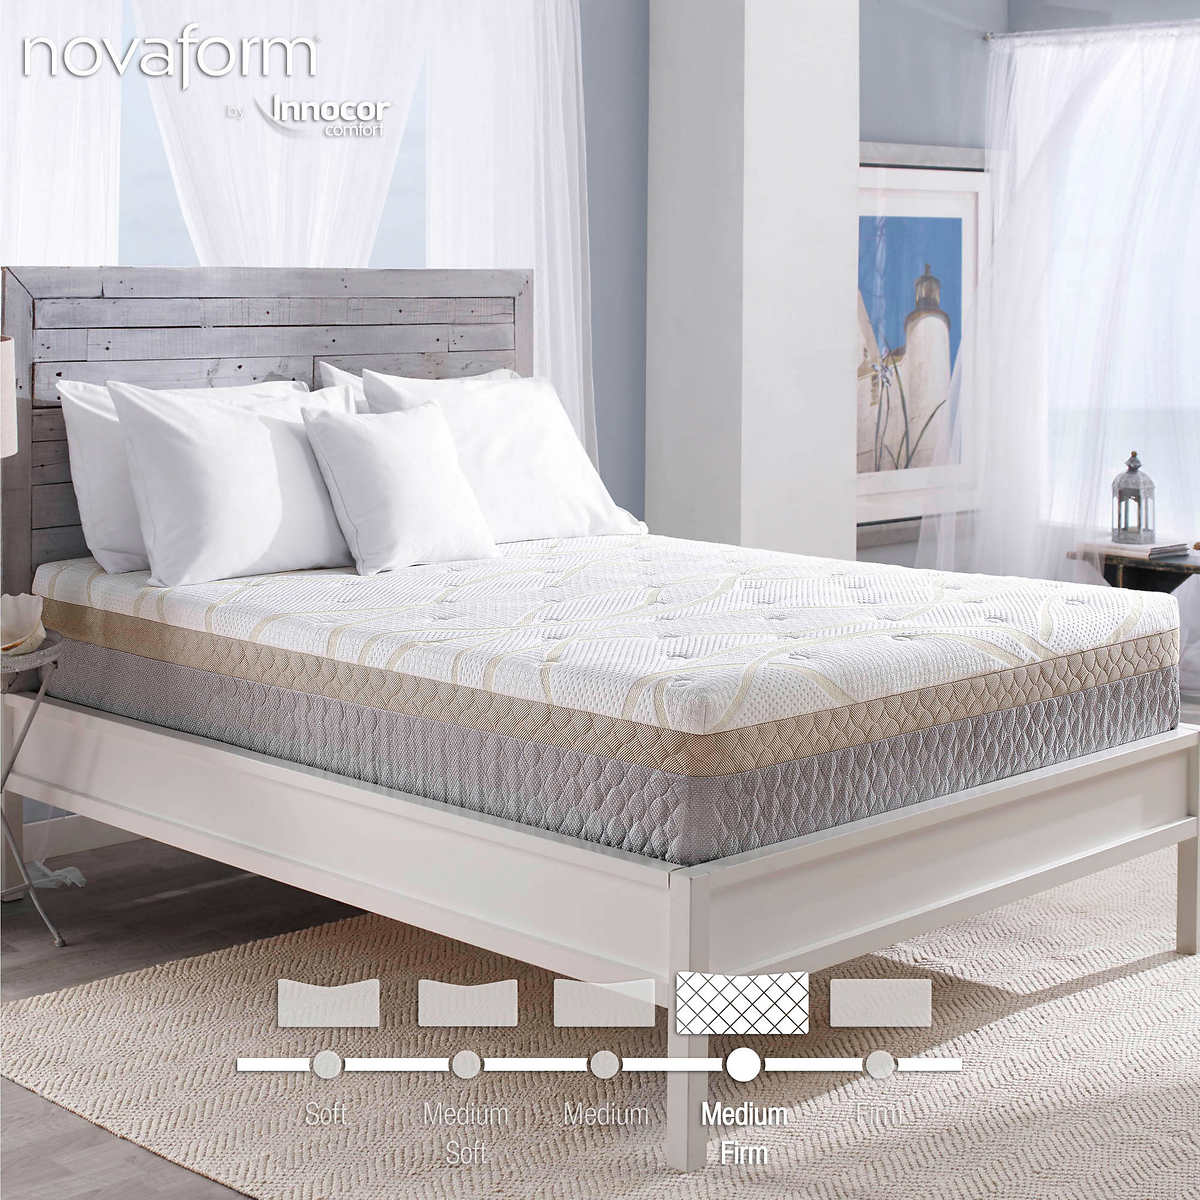 Who Makes Novaform Mattress